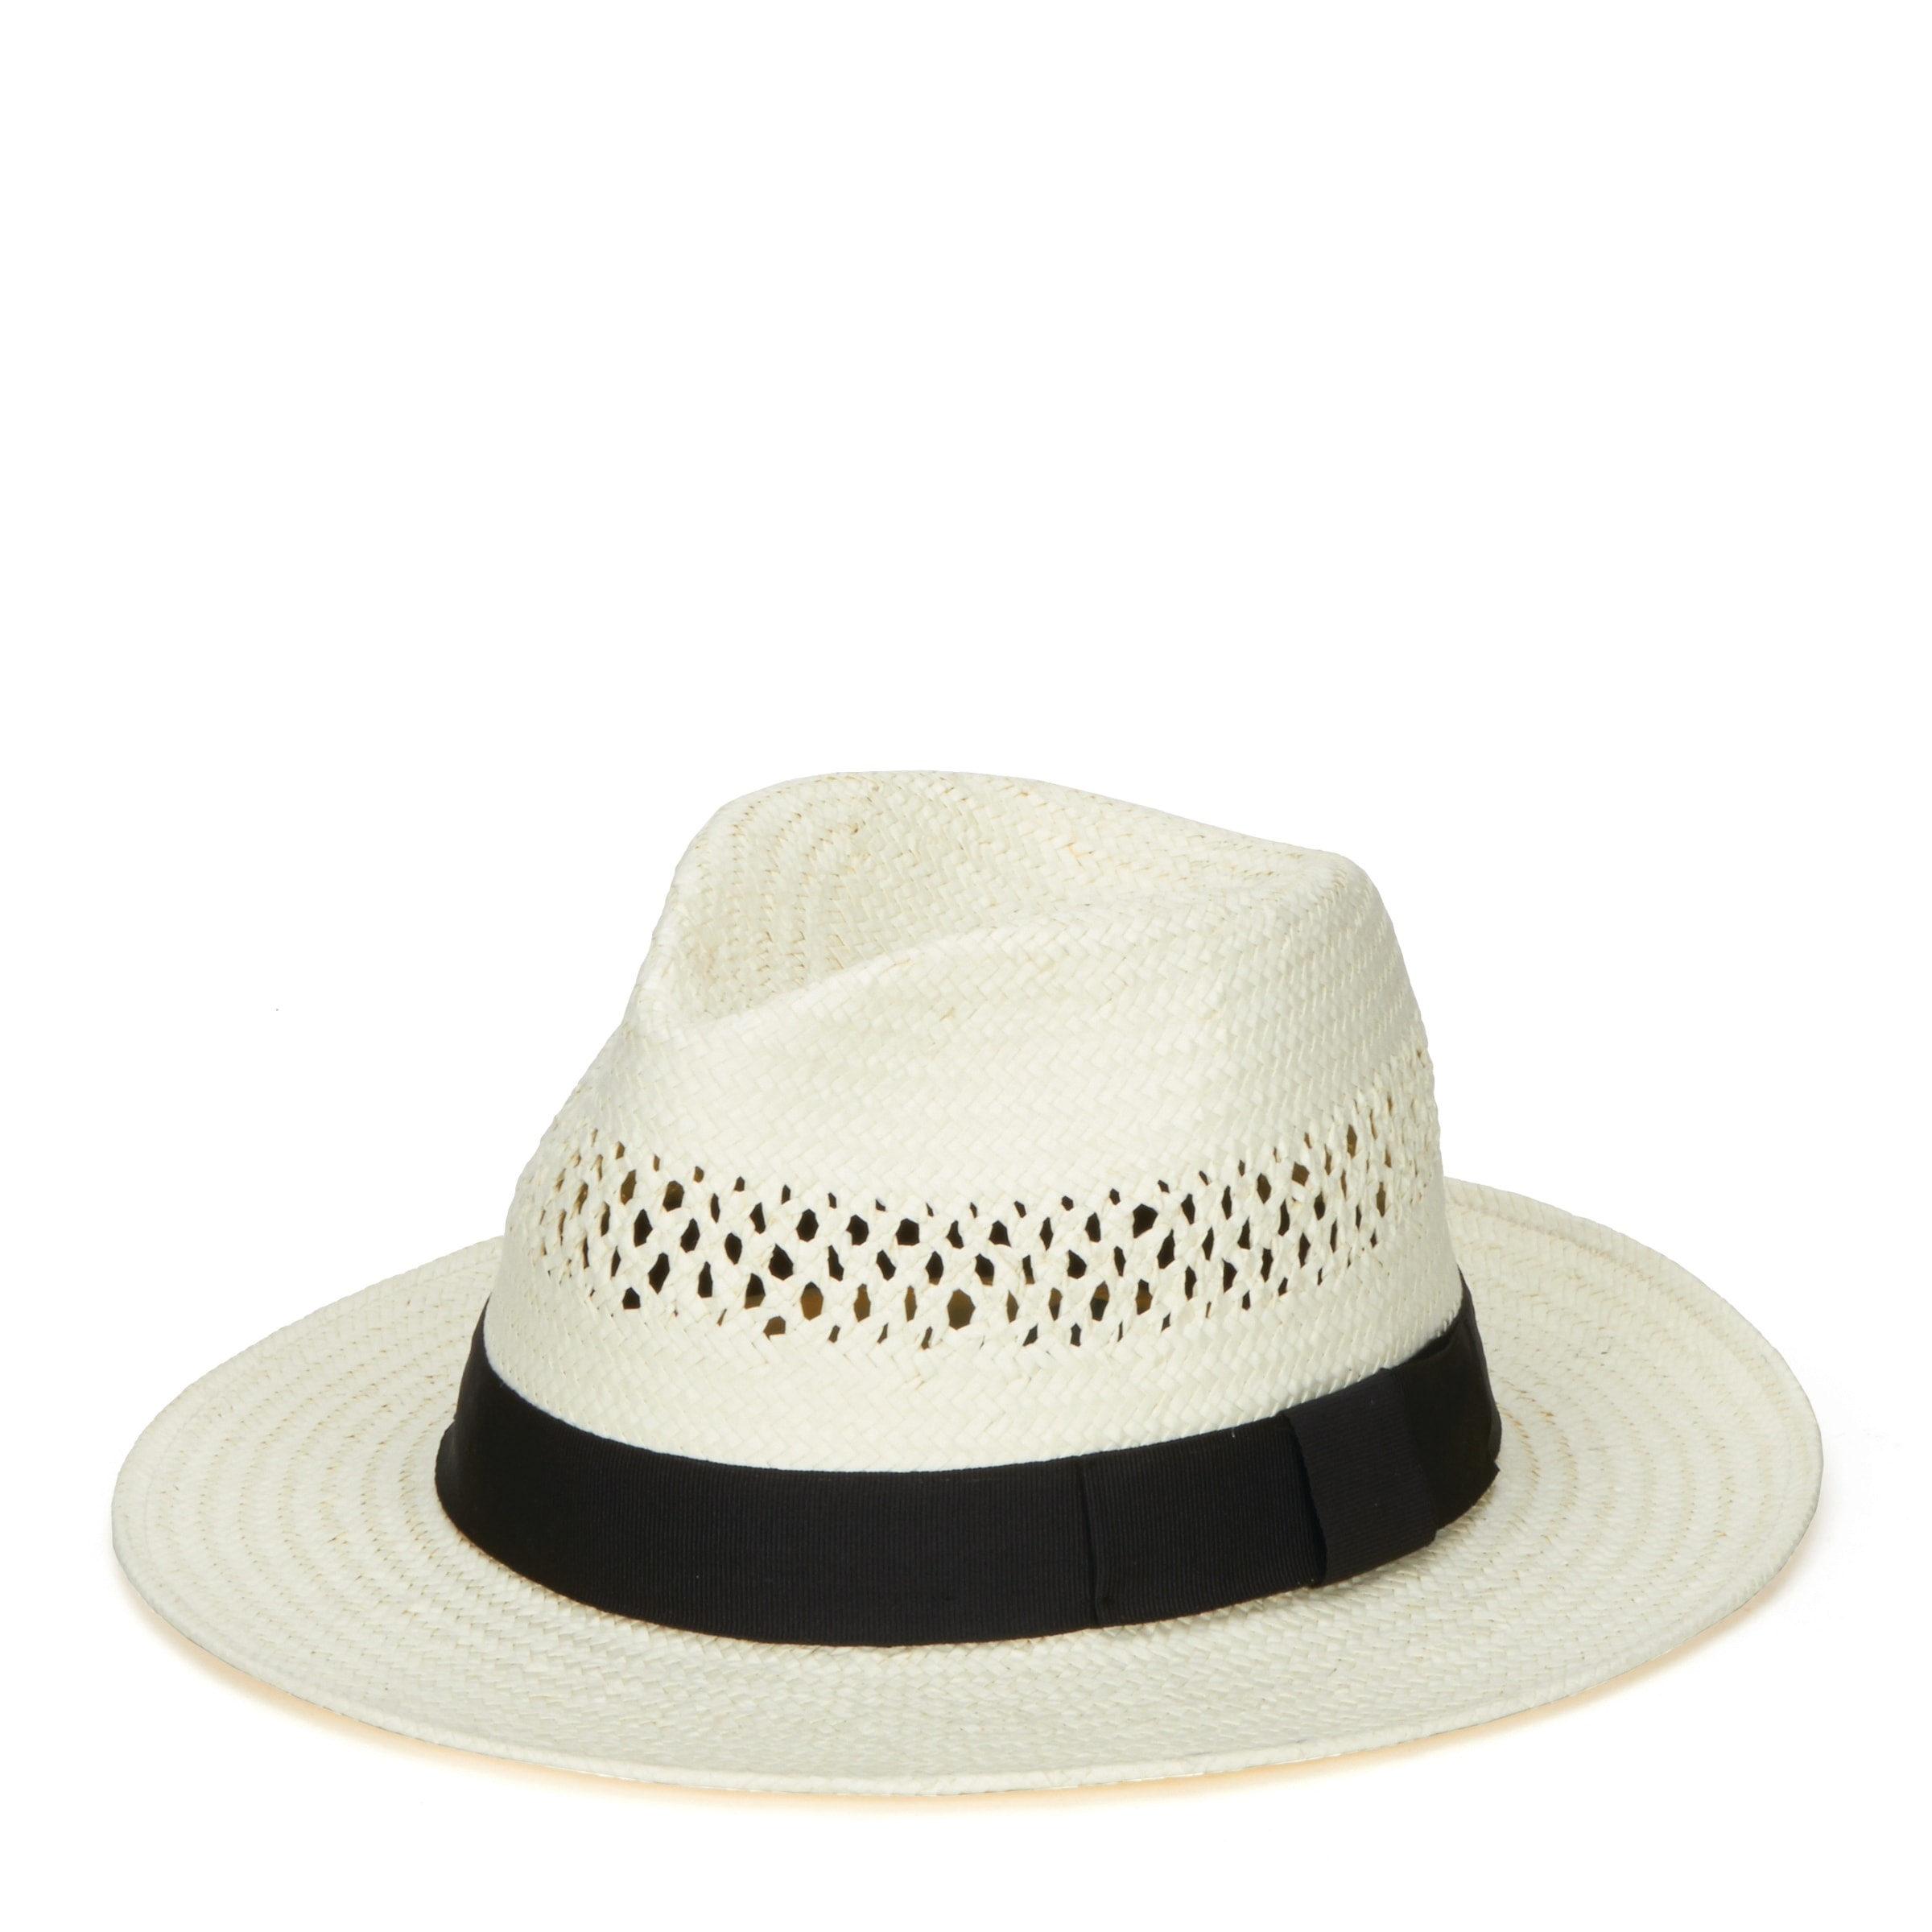 Shop San Diego Hat Company Mens Collection Paper fedora - white - Free  Shipping On Orders Over  45 - Overstock.com - 17770587 8f9c484dbcf